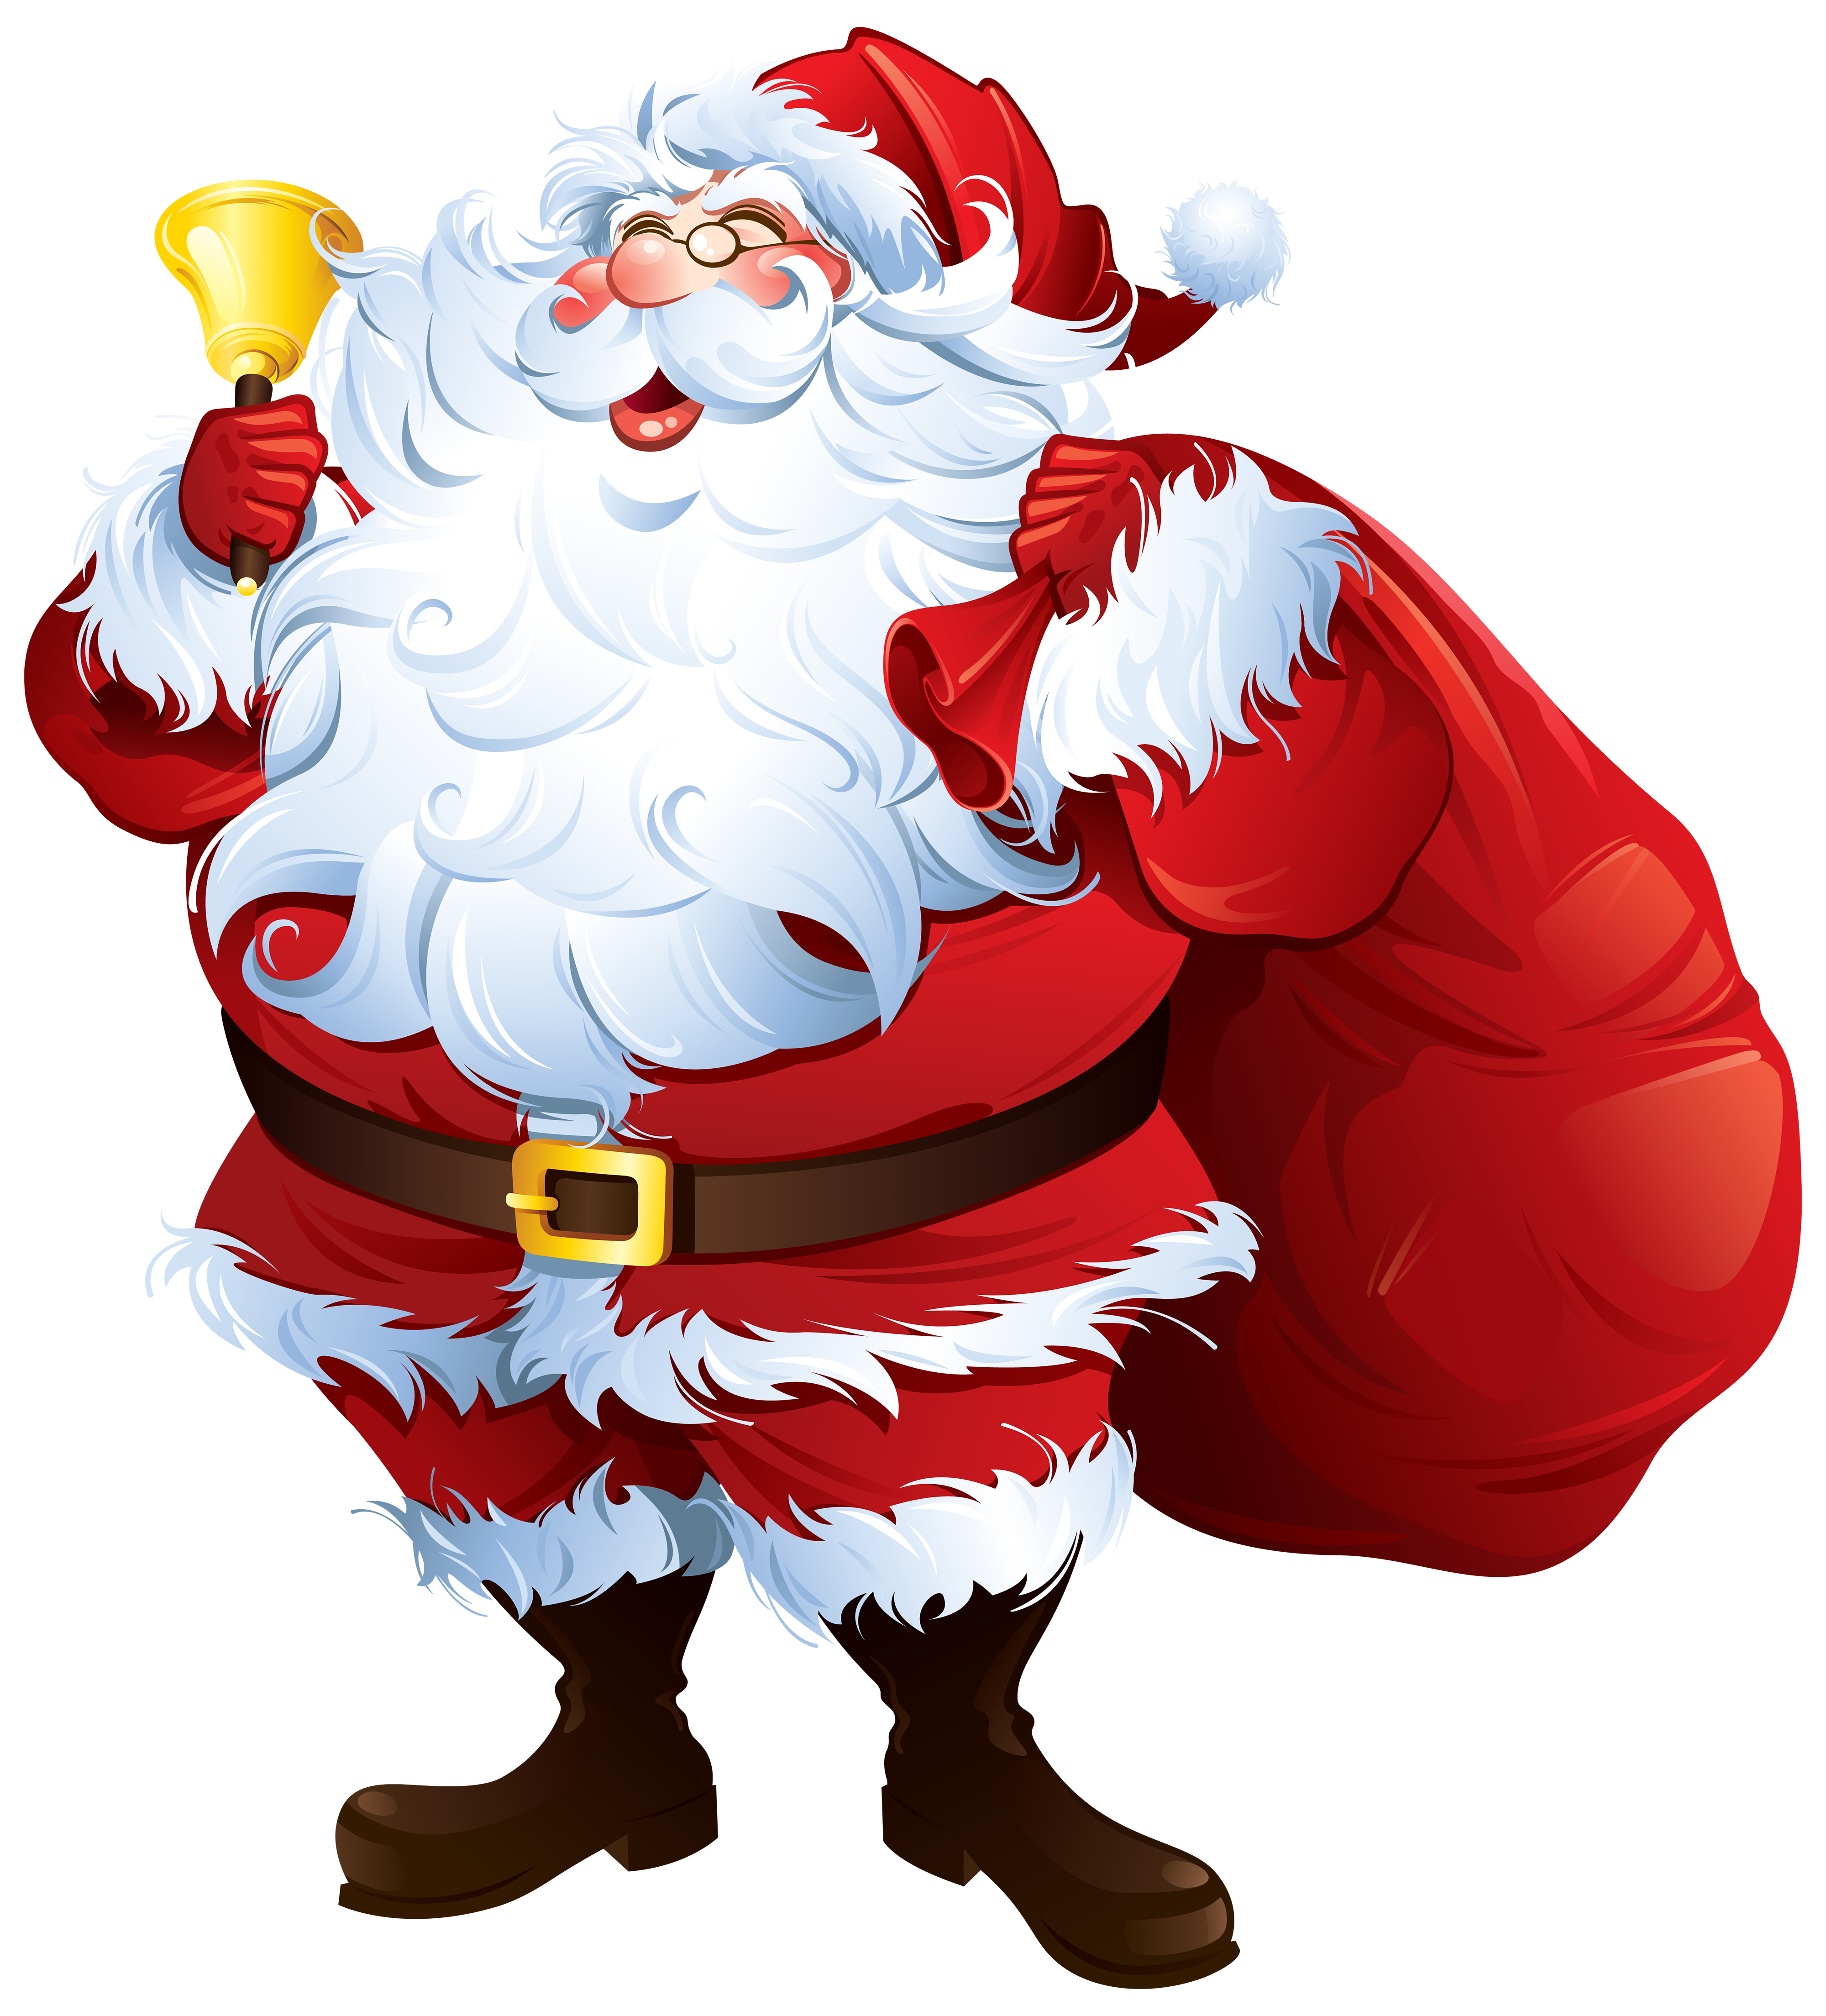 Le'veon bell png. Santa claus with and